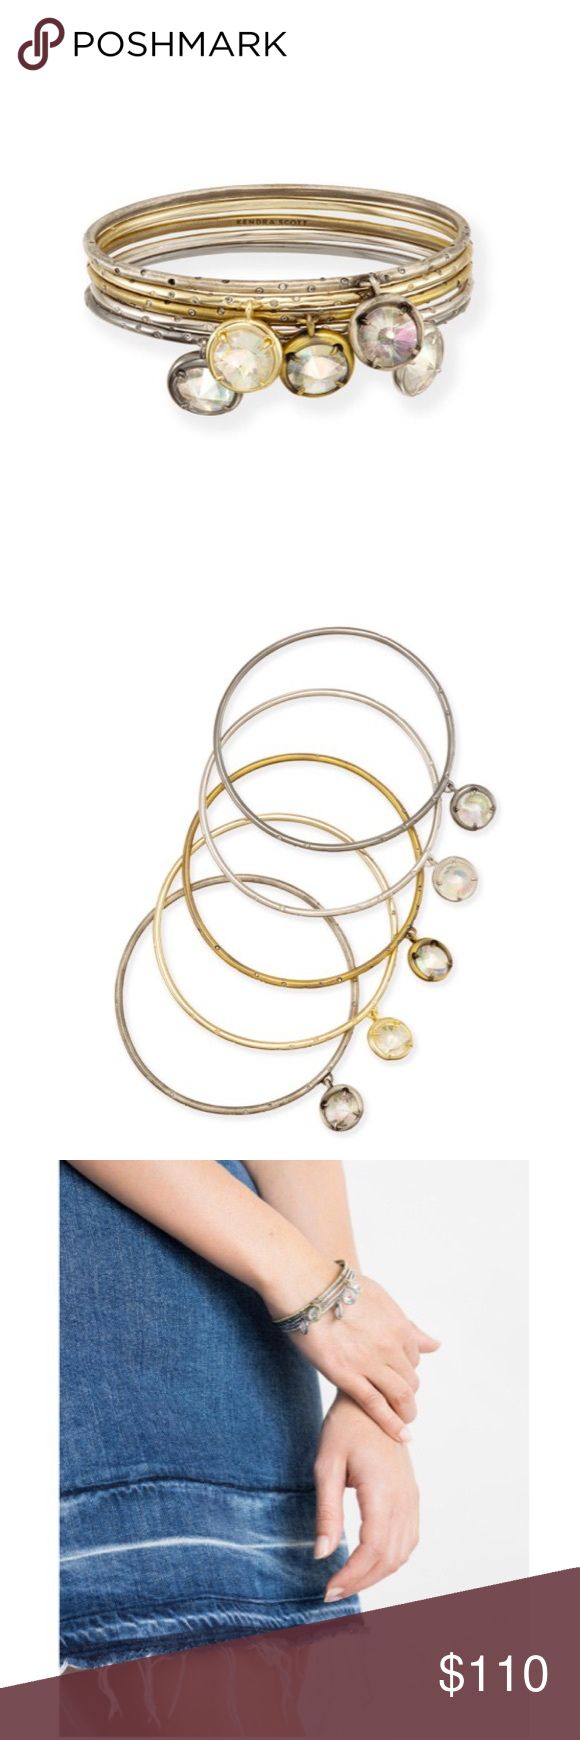 """Brianna Bangle Bracelet Set In Mixed Metals Add an element of charm to your everyday look. A subtle mix of metals creates an eclectic appeal, and the thin bangle design looks great alone or stacked to the full.  Brand new in box, with tags. Never even tried on!  • 14K Gold, Rhodium, Antique Silver, Hematite, Antique Plated Brass • Size: 2.5"""" diameter, .51"""" station diameter • Qty: set of 5 • Material: iridescent clear glass*  *Due to the one-of-a-kind nature of the medium, exact color…"""